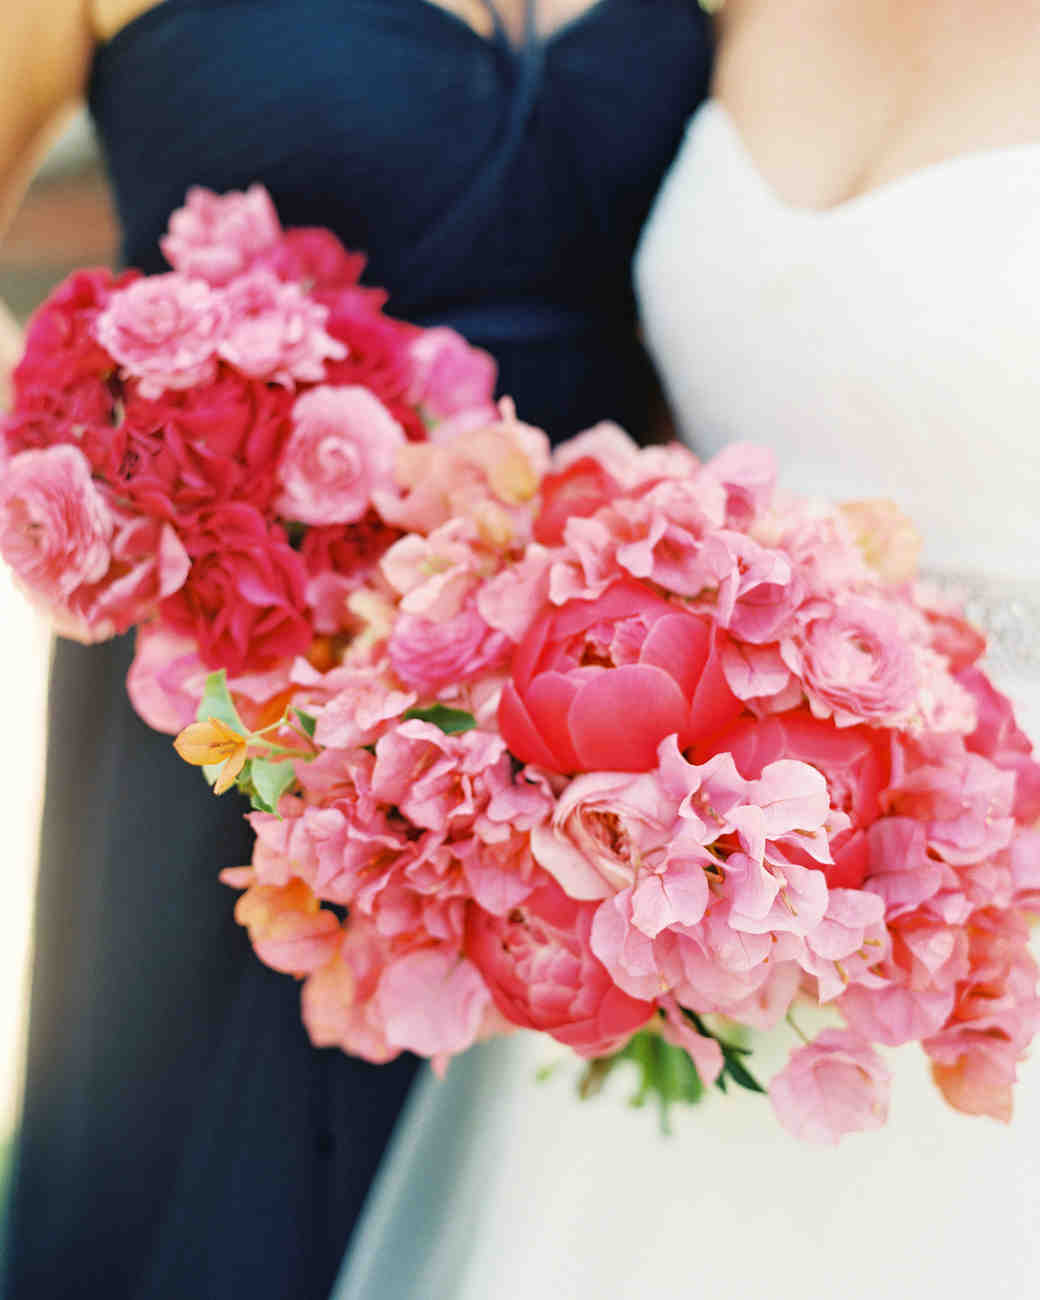 11 dos and donts for choosing your bridesmaids bouquets martha 11 dos and donts for choosing your bridesmaids bouquets martha stewart weddings mightylinksfo